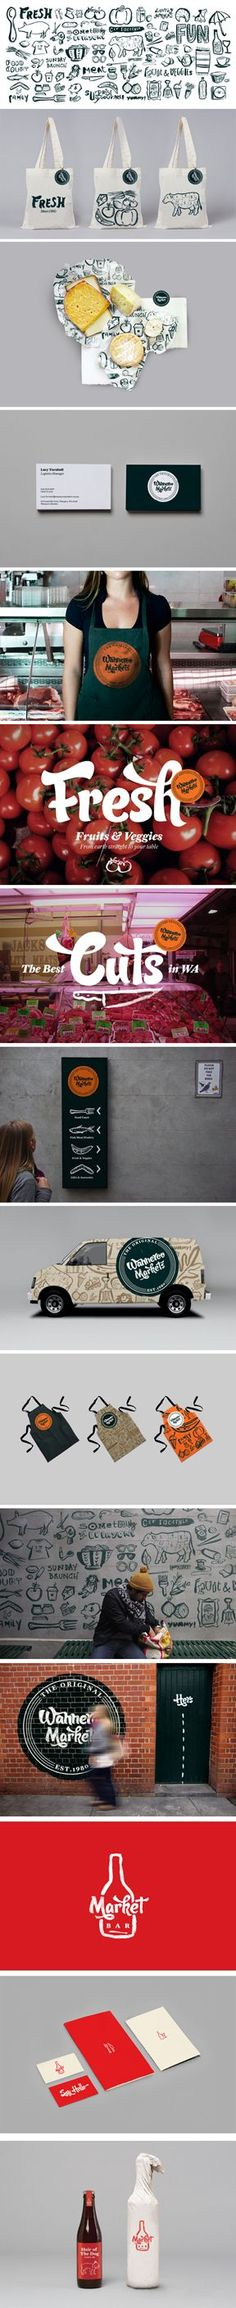 Let's go shopping at Waneroo Market #identity #packaging #branding